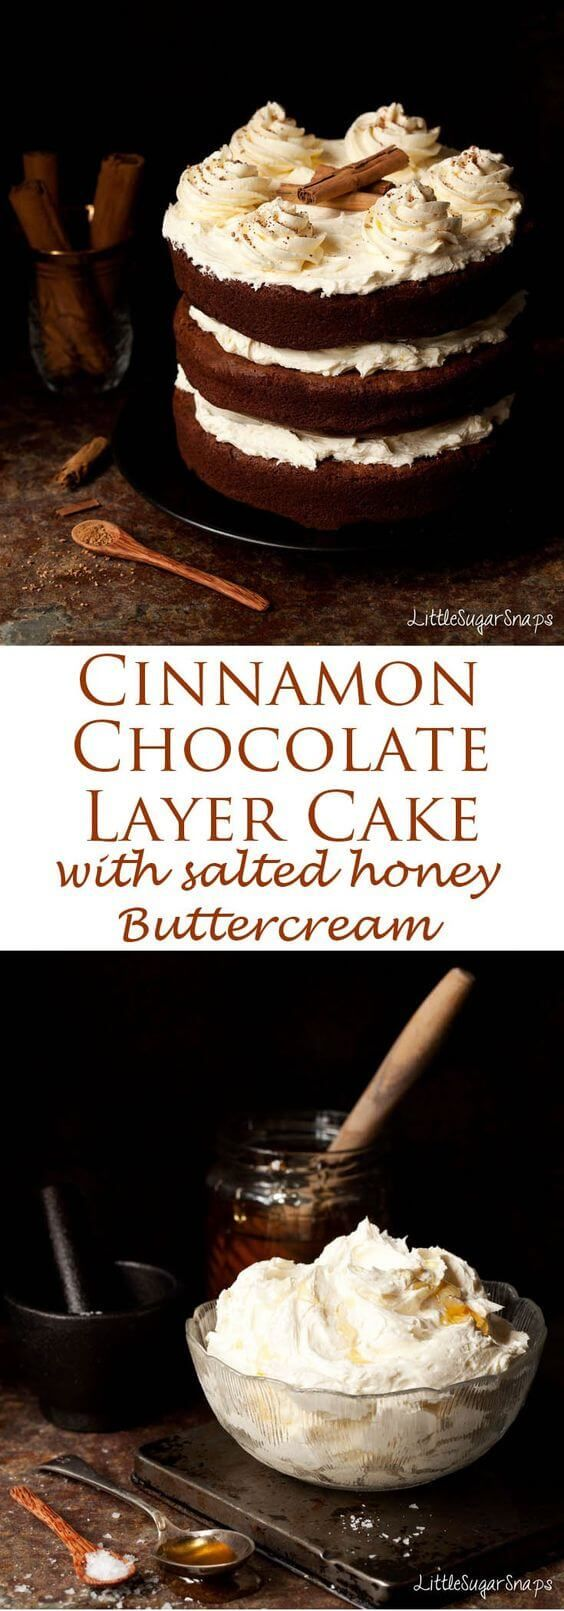 awesome Cinnamon Chocolate Cake with Salted Honey Buttercream